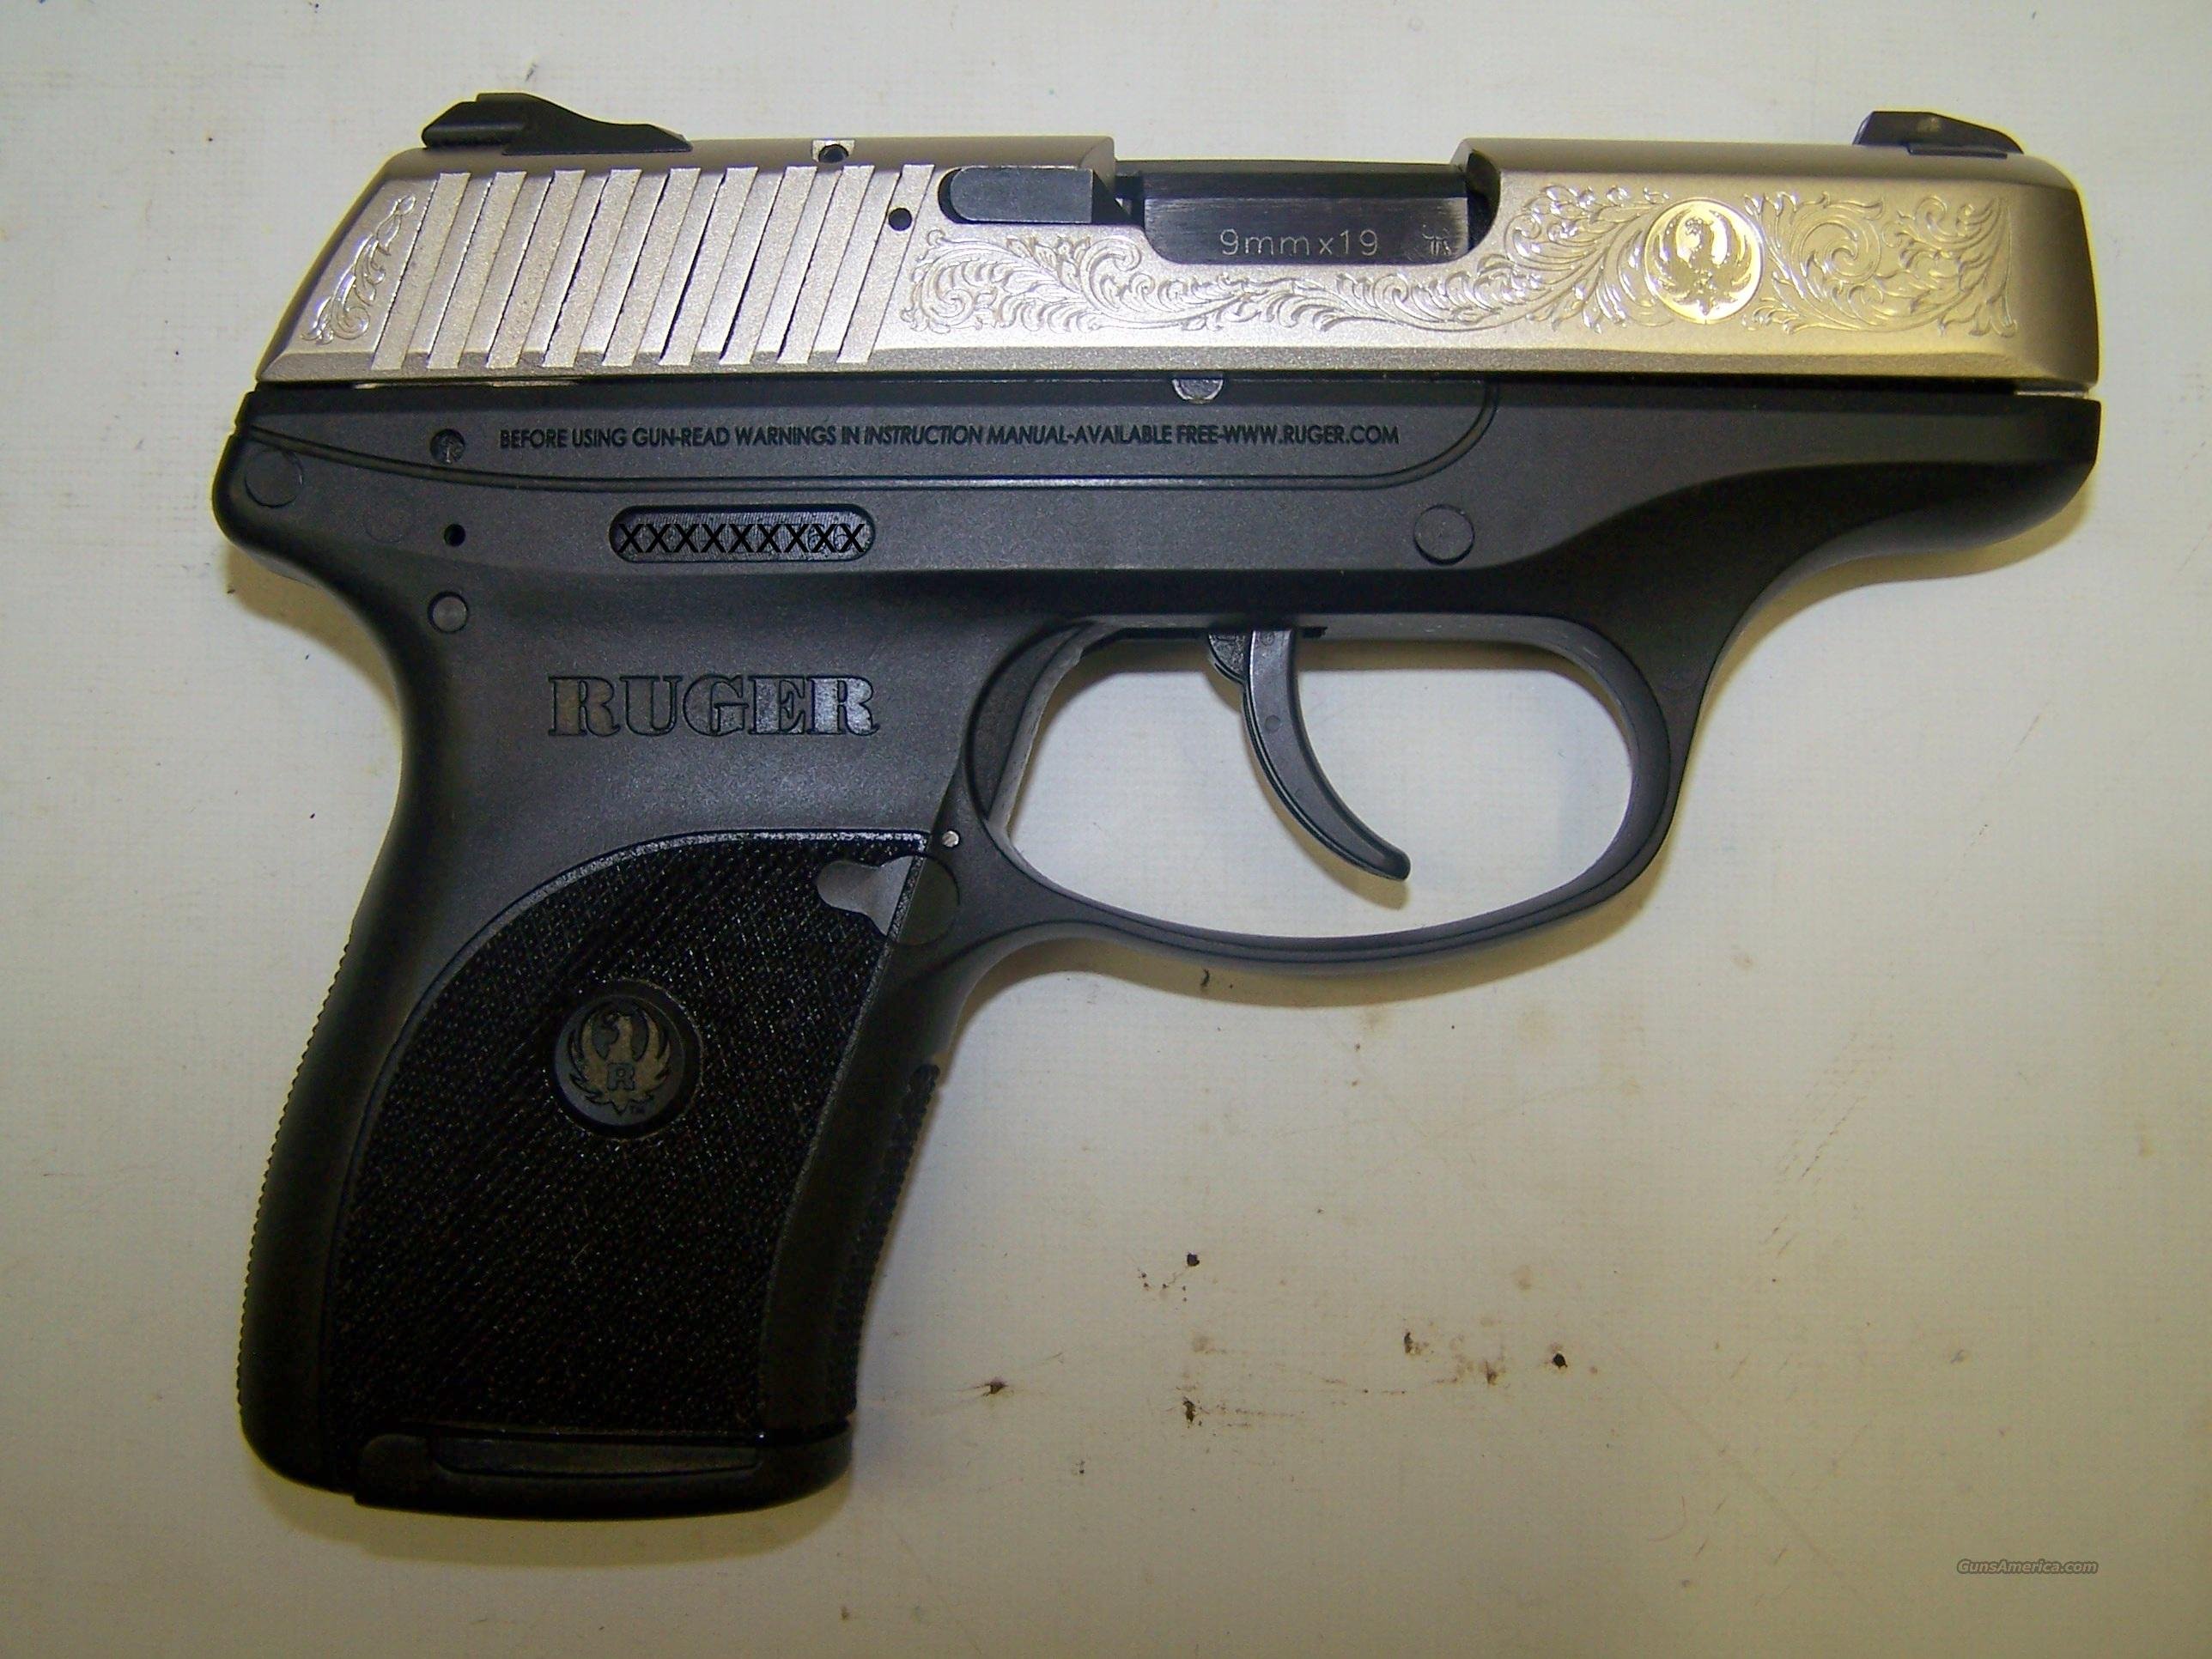 Armslist for sale/trade: nib ruger lc9-tg model 3207 talo gold.